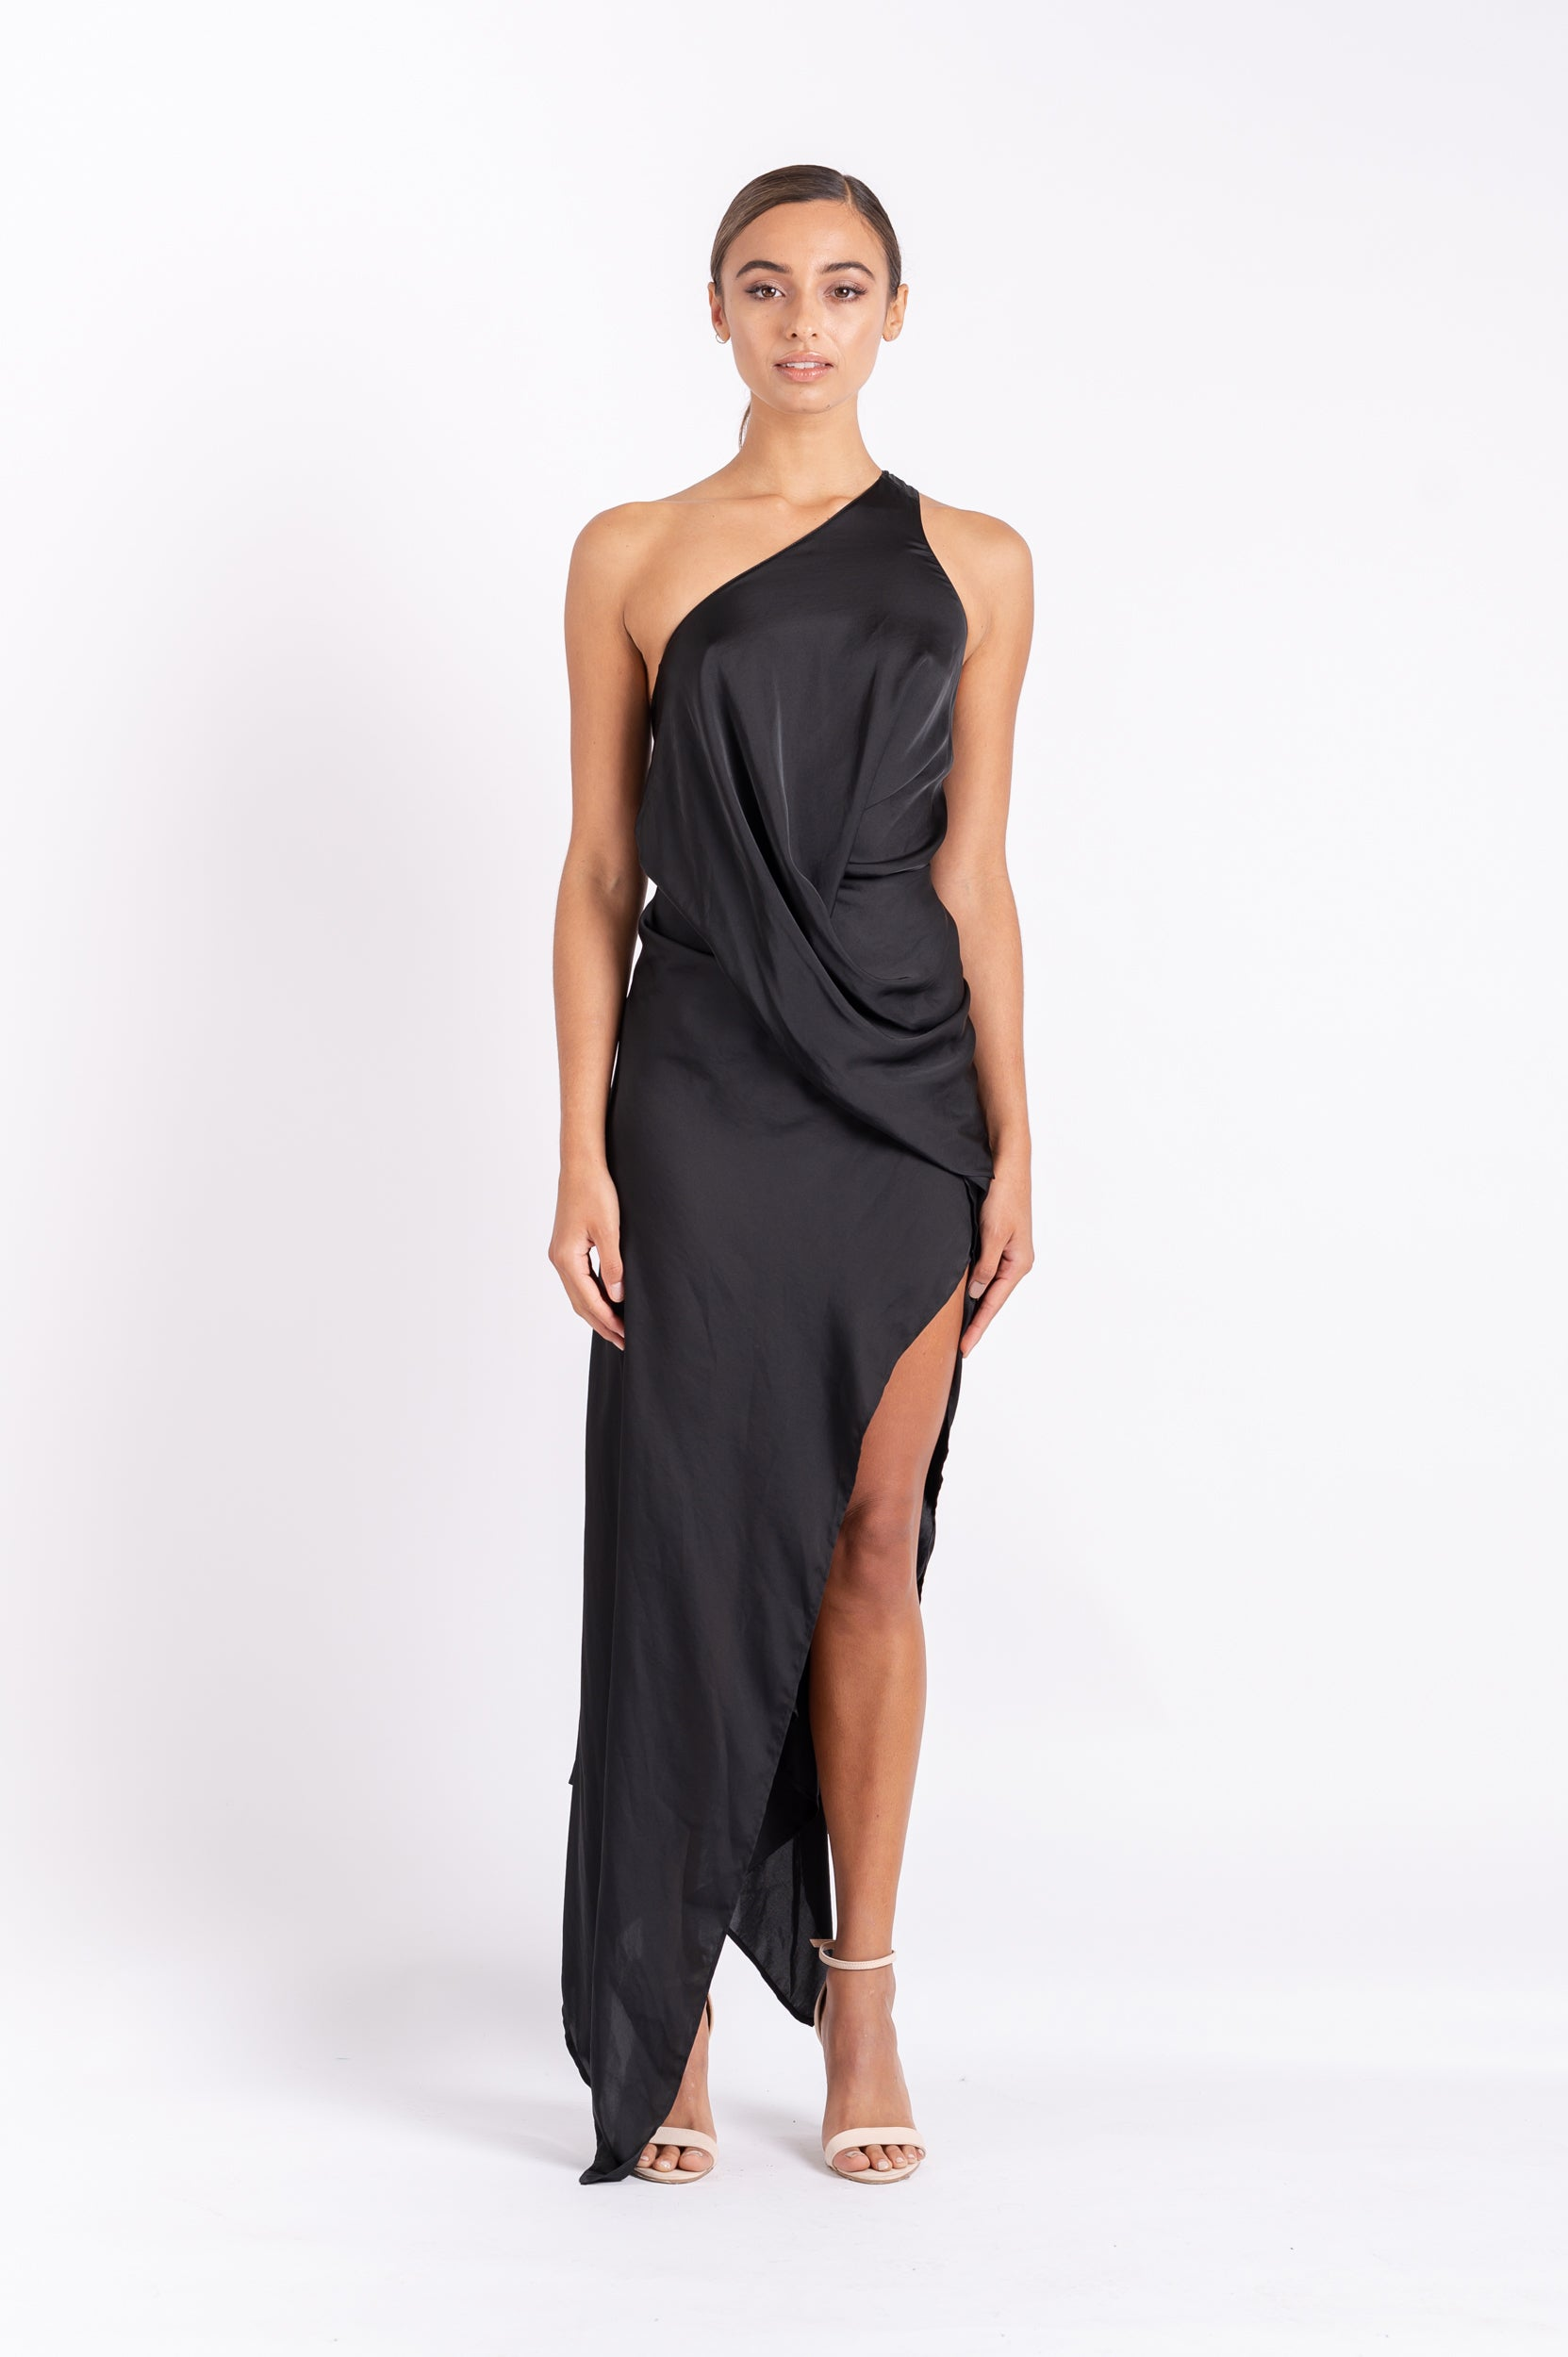 PHILLY DRESS IN BLACK AIR